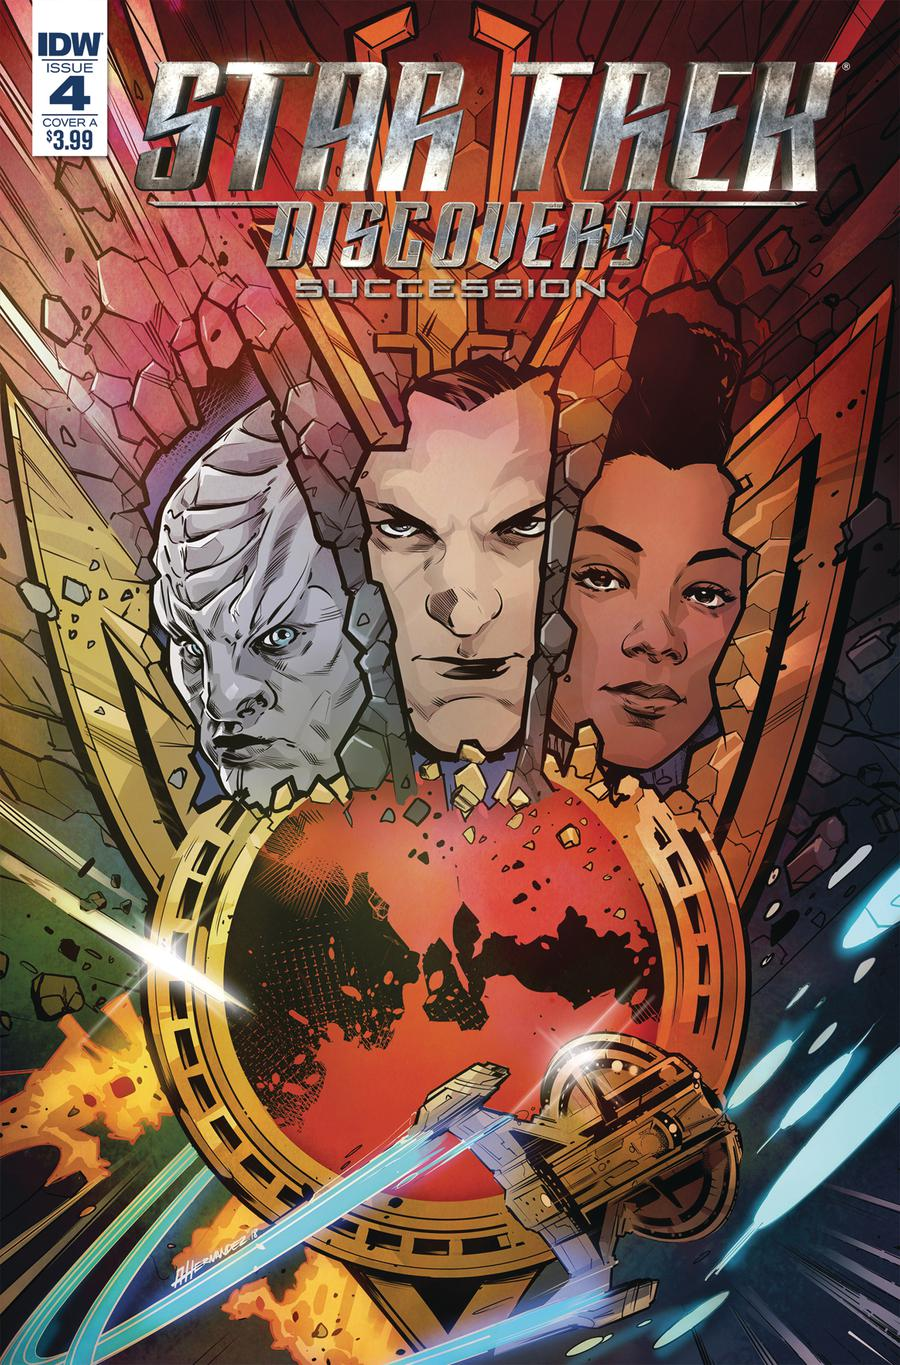 Star Trek Discovery Succession #4 Cover A Regular Angel Hernandez Cover